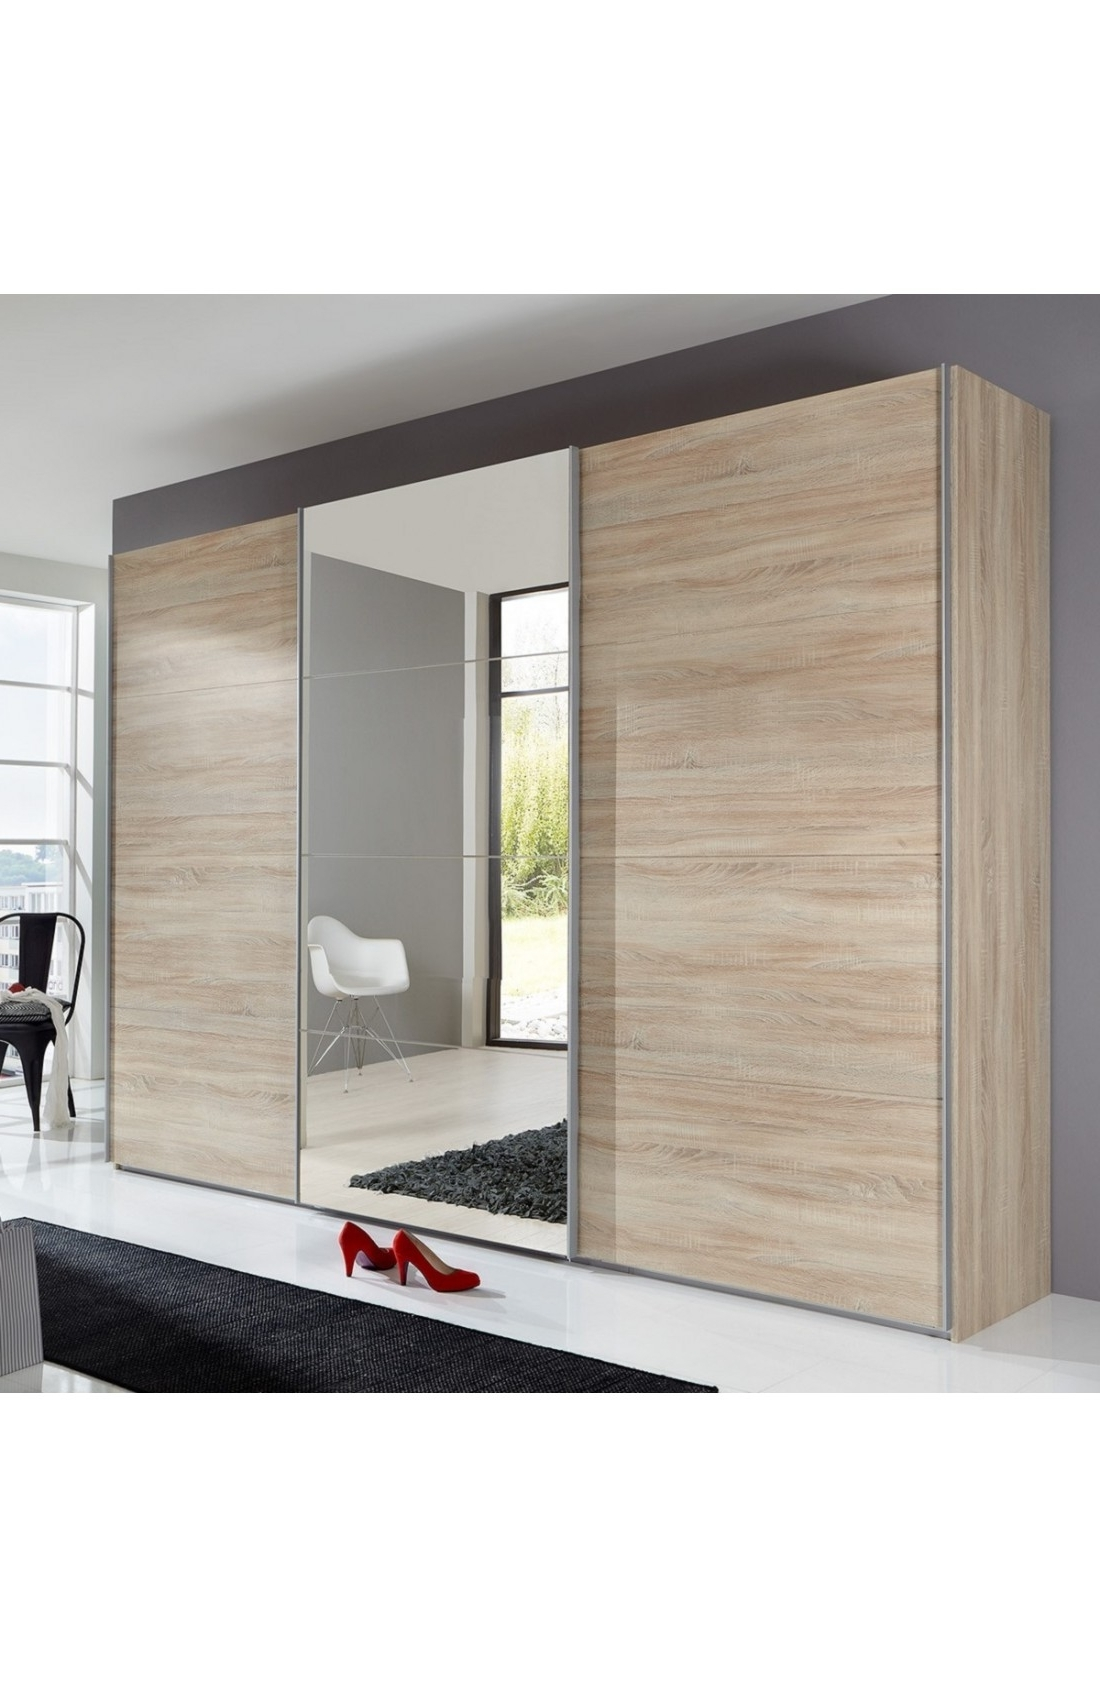 Favorite Wardrobes 3 Door With Mirror Within Slumberhaus 'ernie' German Made Modern 270cm Oak & Mirror 3 Door (View 11 of 15)